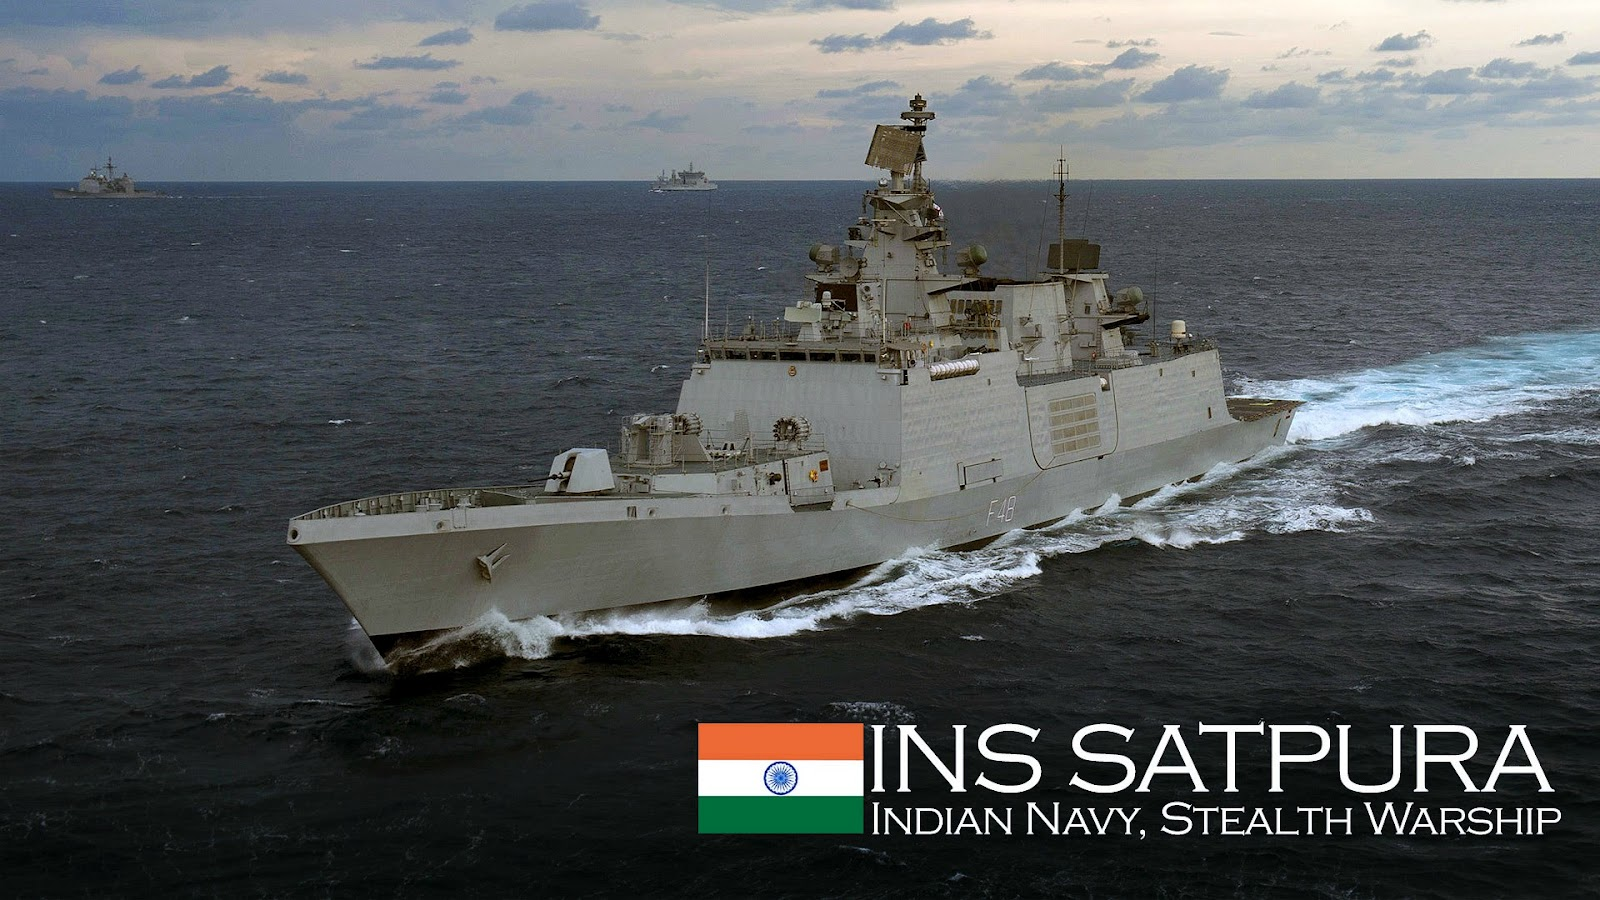 Indian Navy Image Gallery Wallpapers: INS Satpura (F48), Indian Shivalik Class 17A Stealth